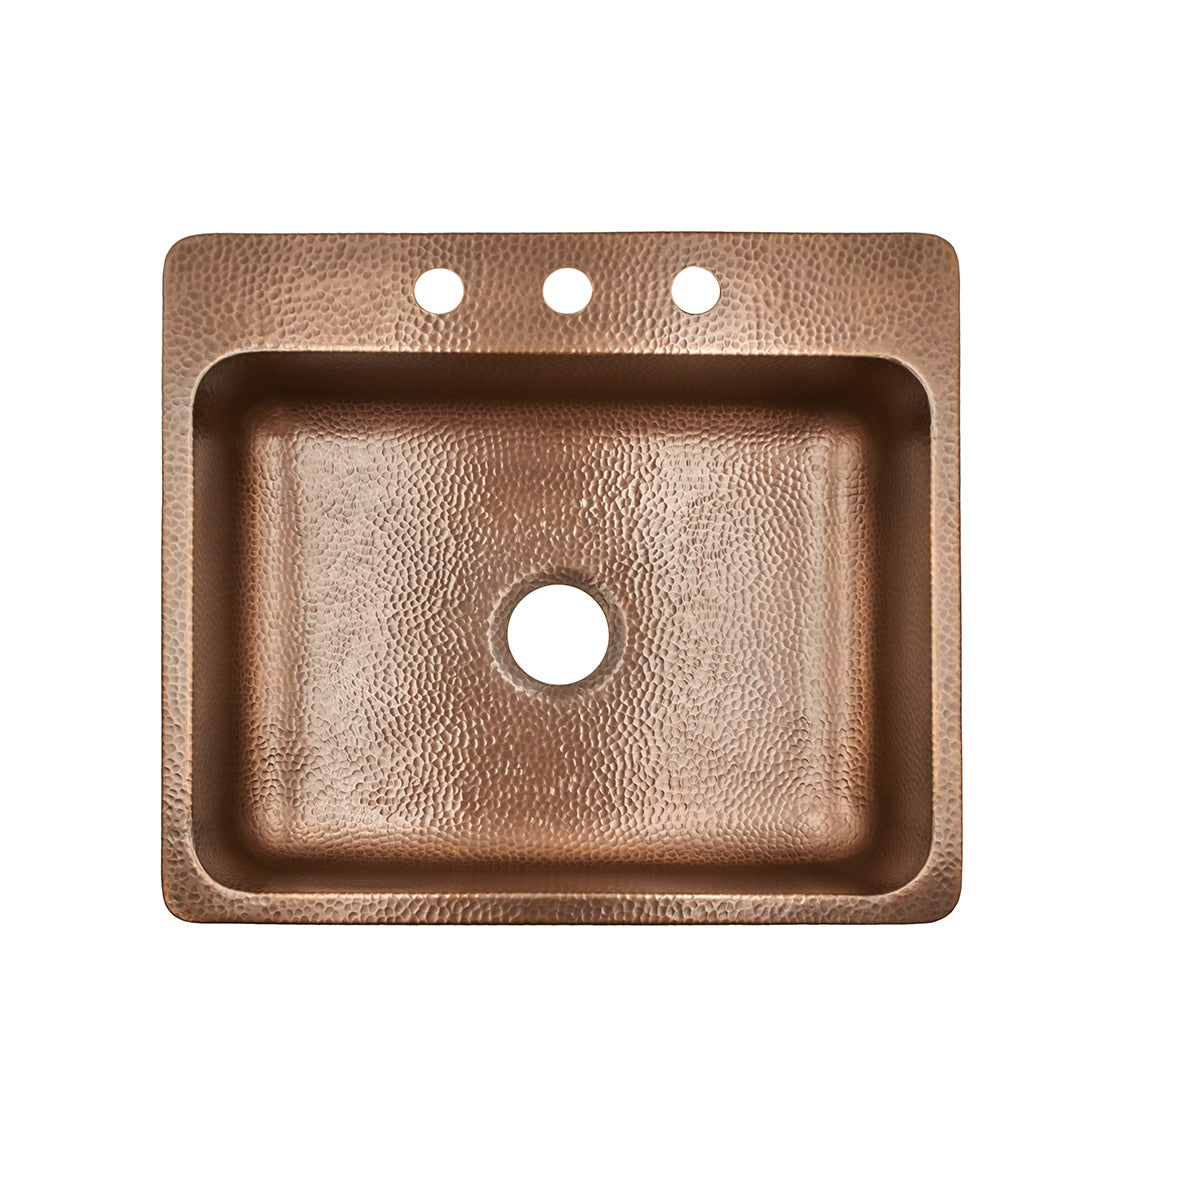 Sinkology rosa drop in 25 3 hole copper kitchen sink in antique sinkology rosa drop in 25 3 hole copper kitchen sink in antique copper free shipping today overstock 20974772 workwithnaturefo